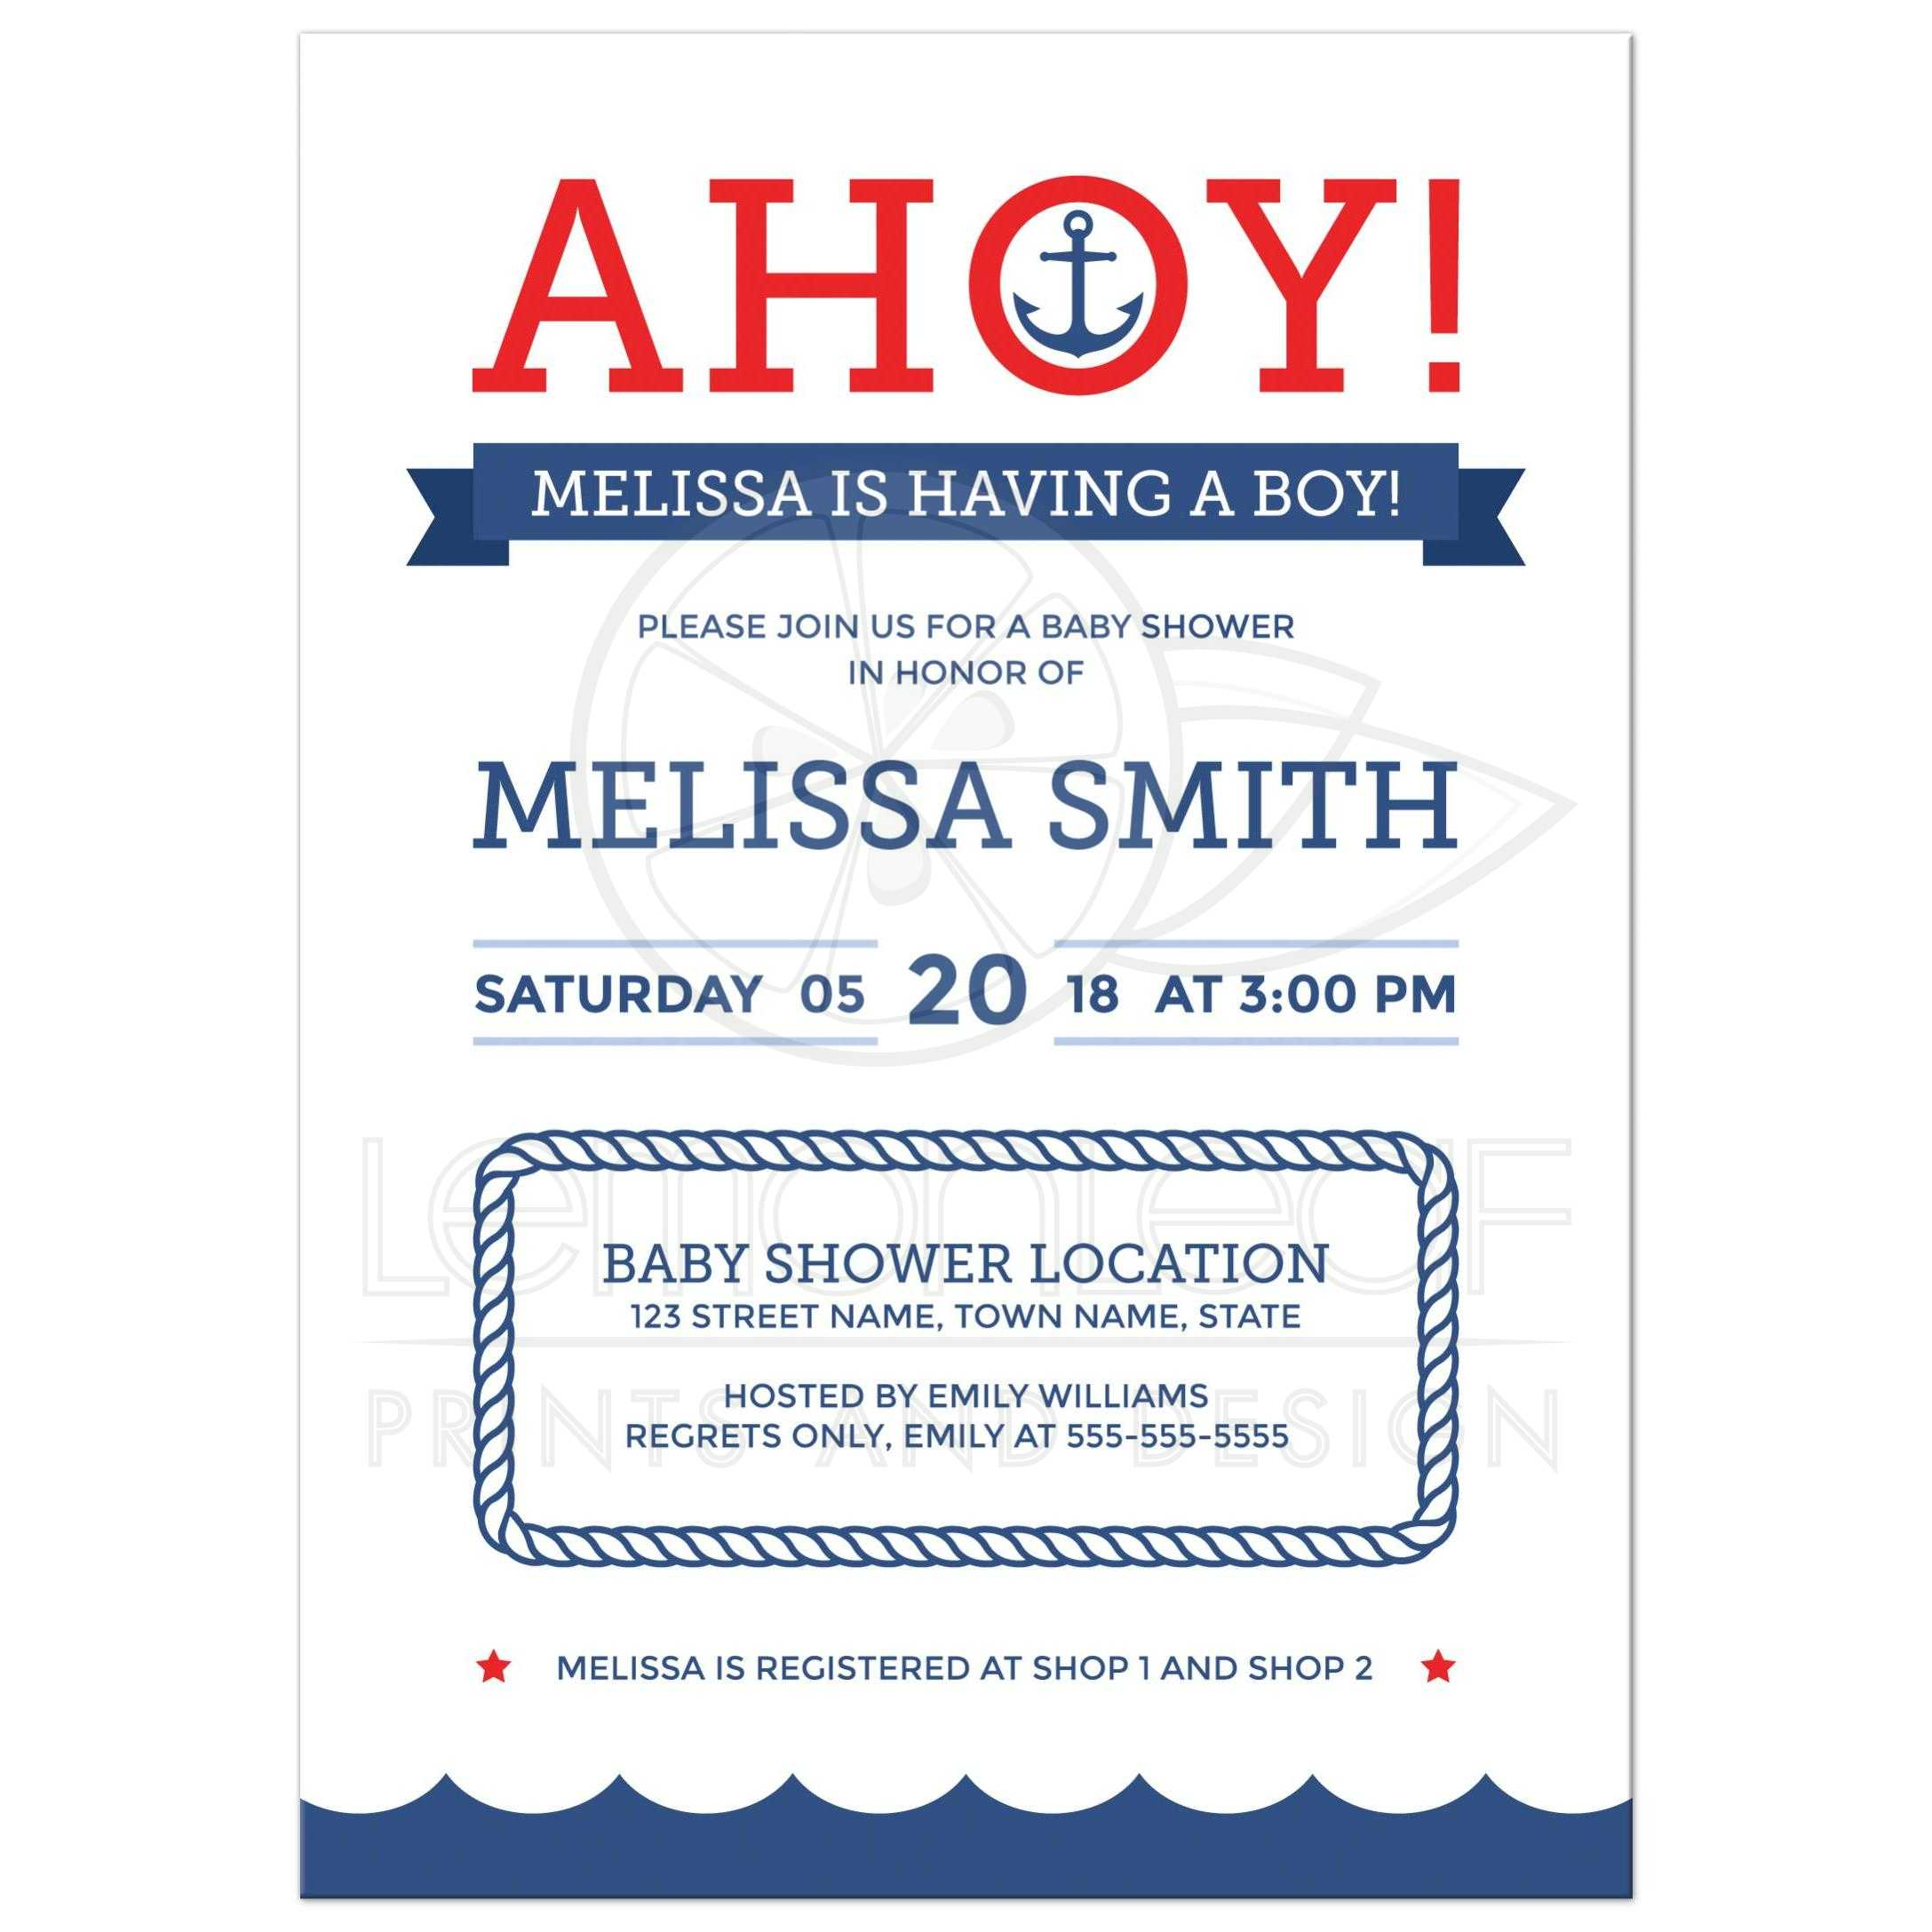 Ahoy nautical baby shower invitation with anchor red and blue ahoy nautical baby shower invitation with anchor and blue wave border filmwisefo